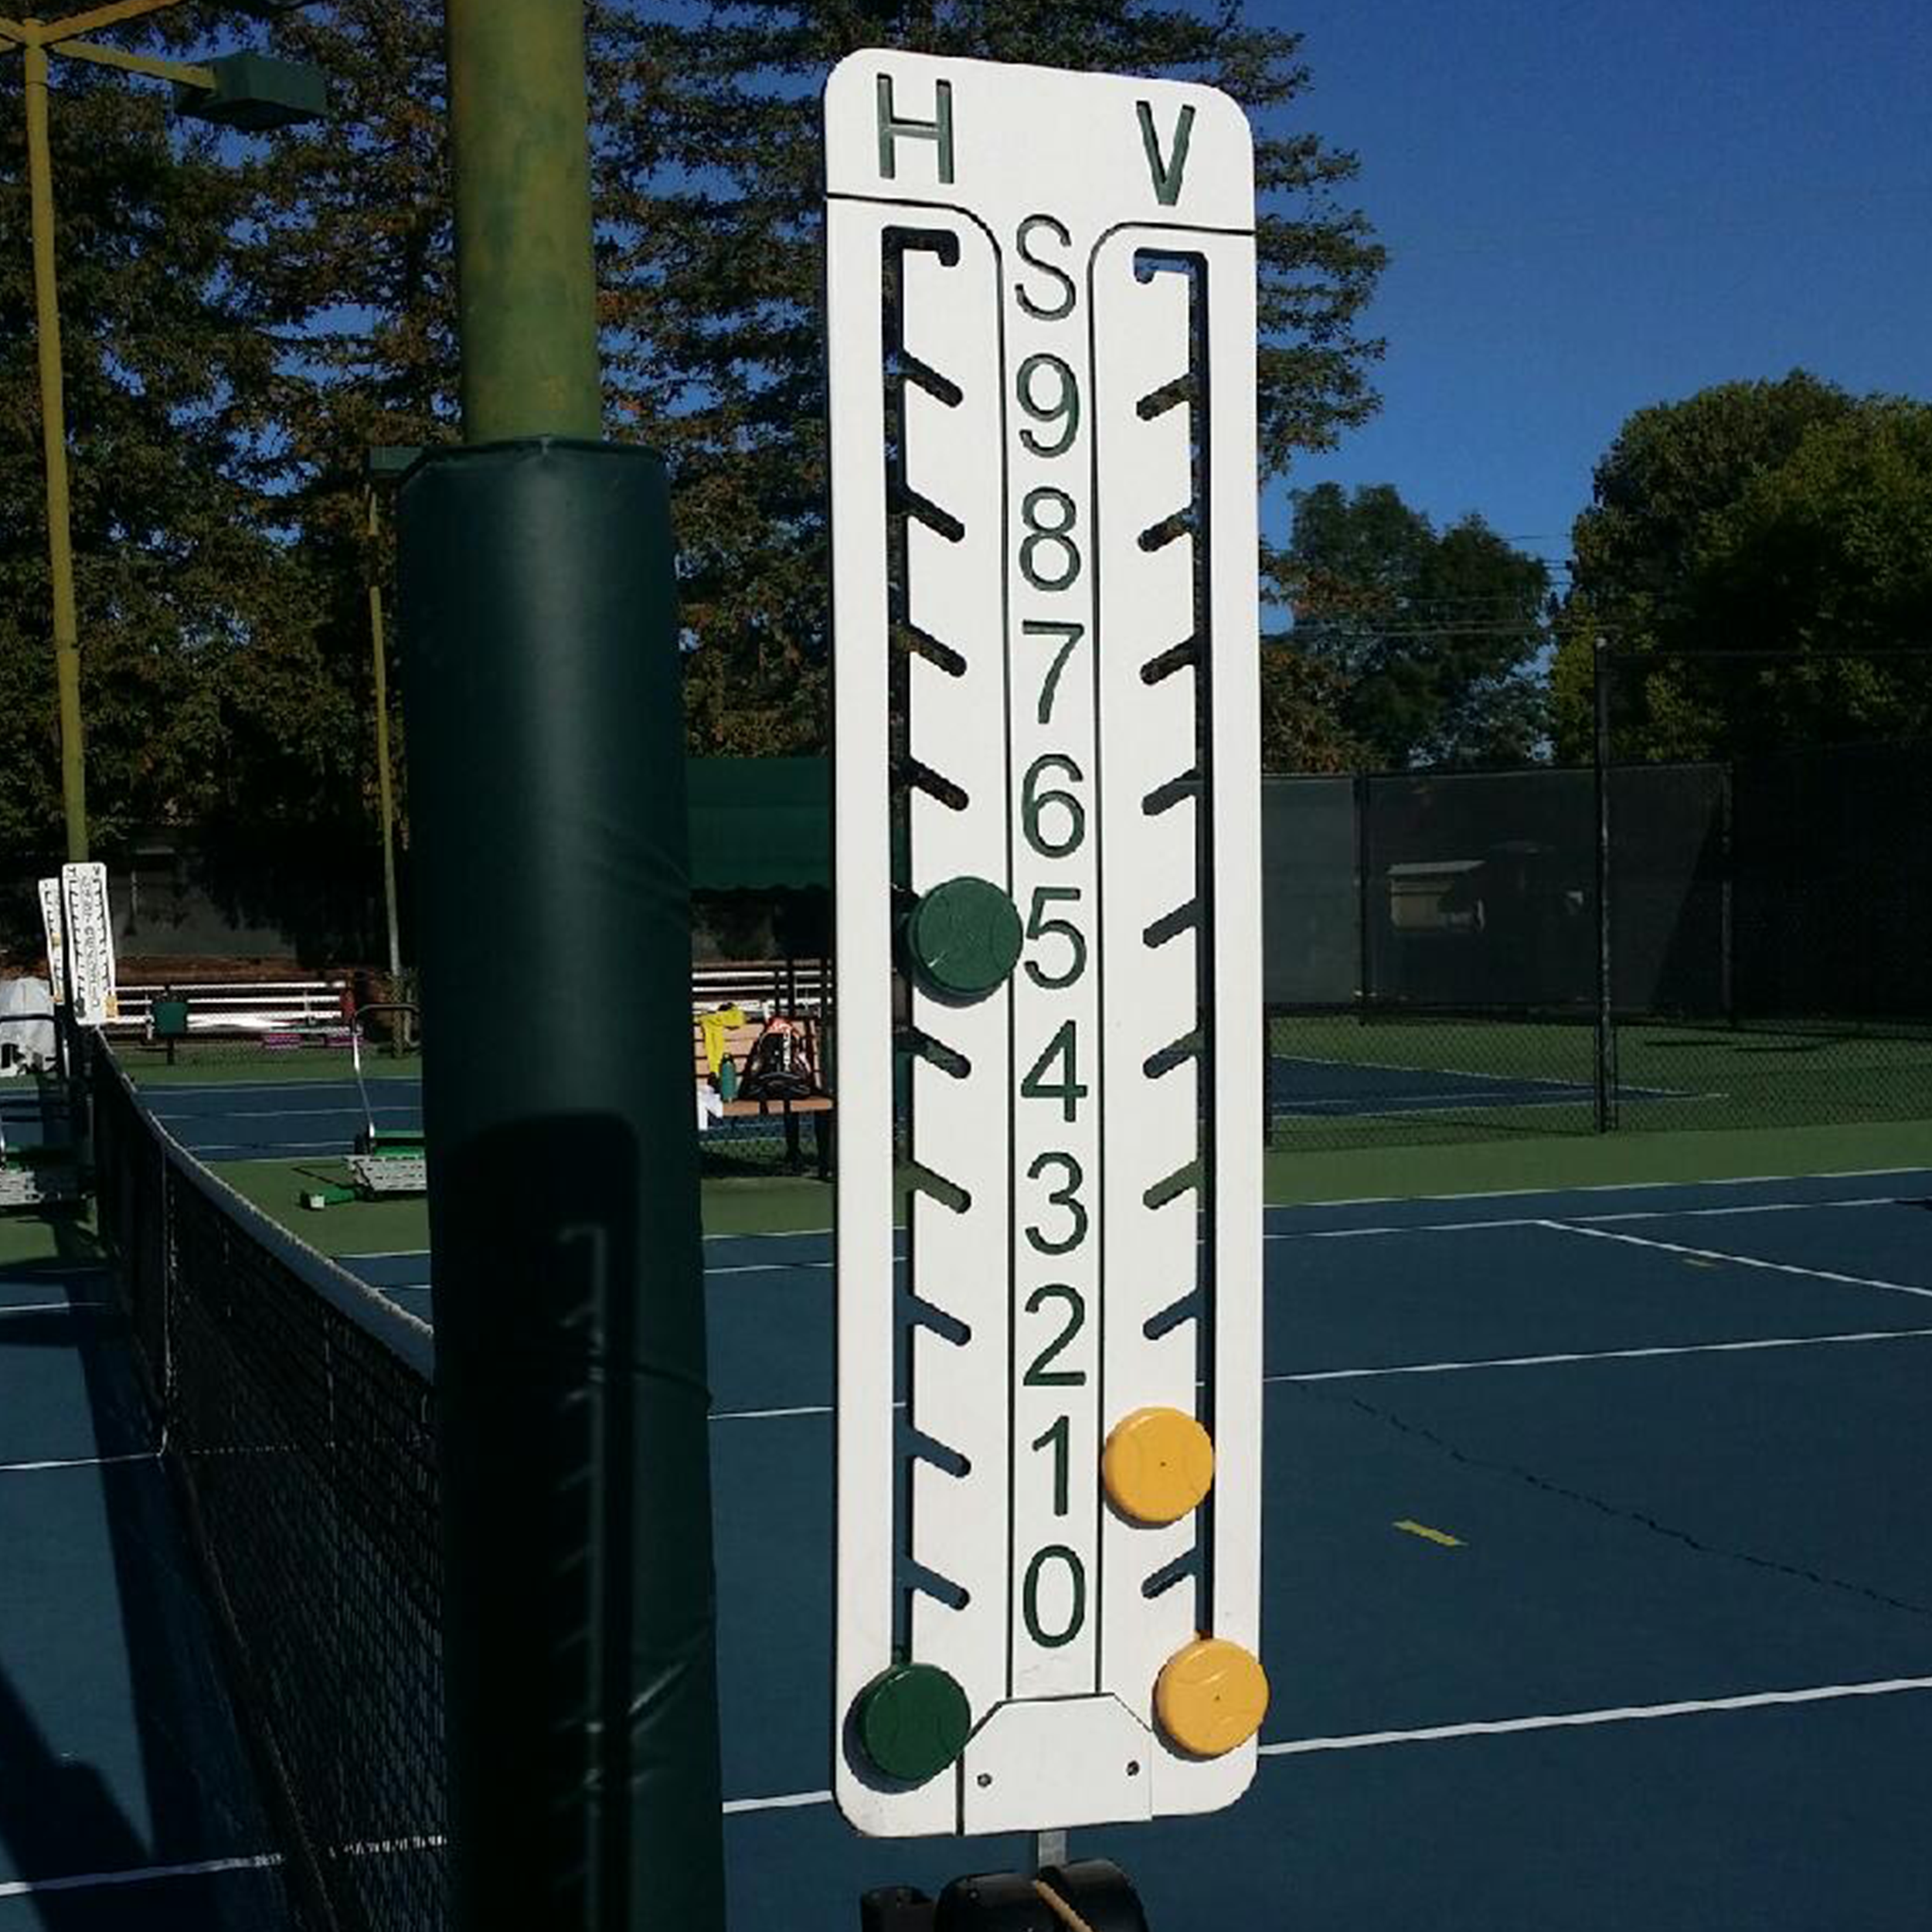 Tennis court with a point tracker